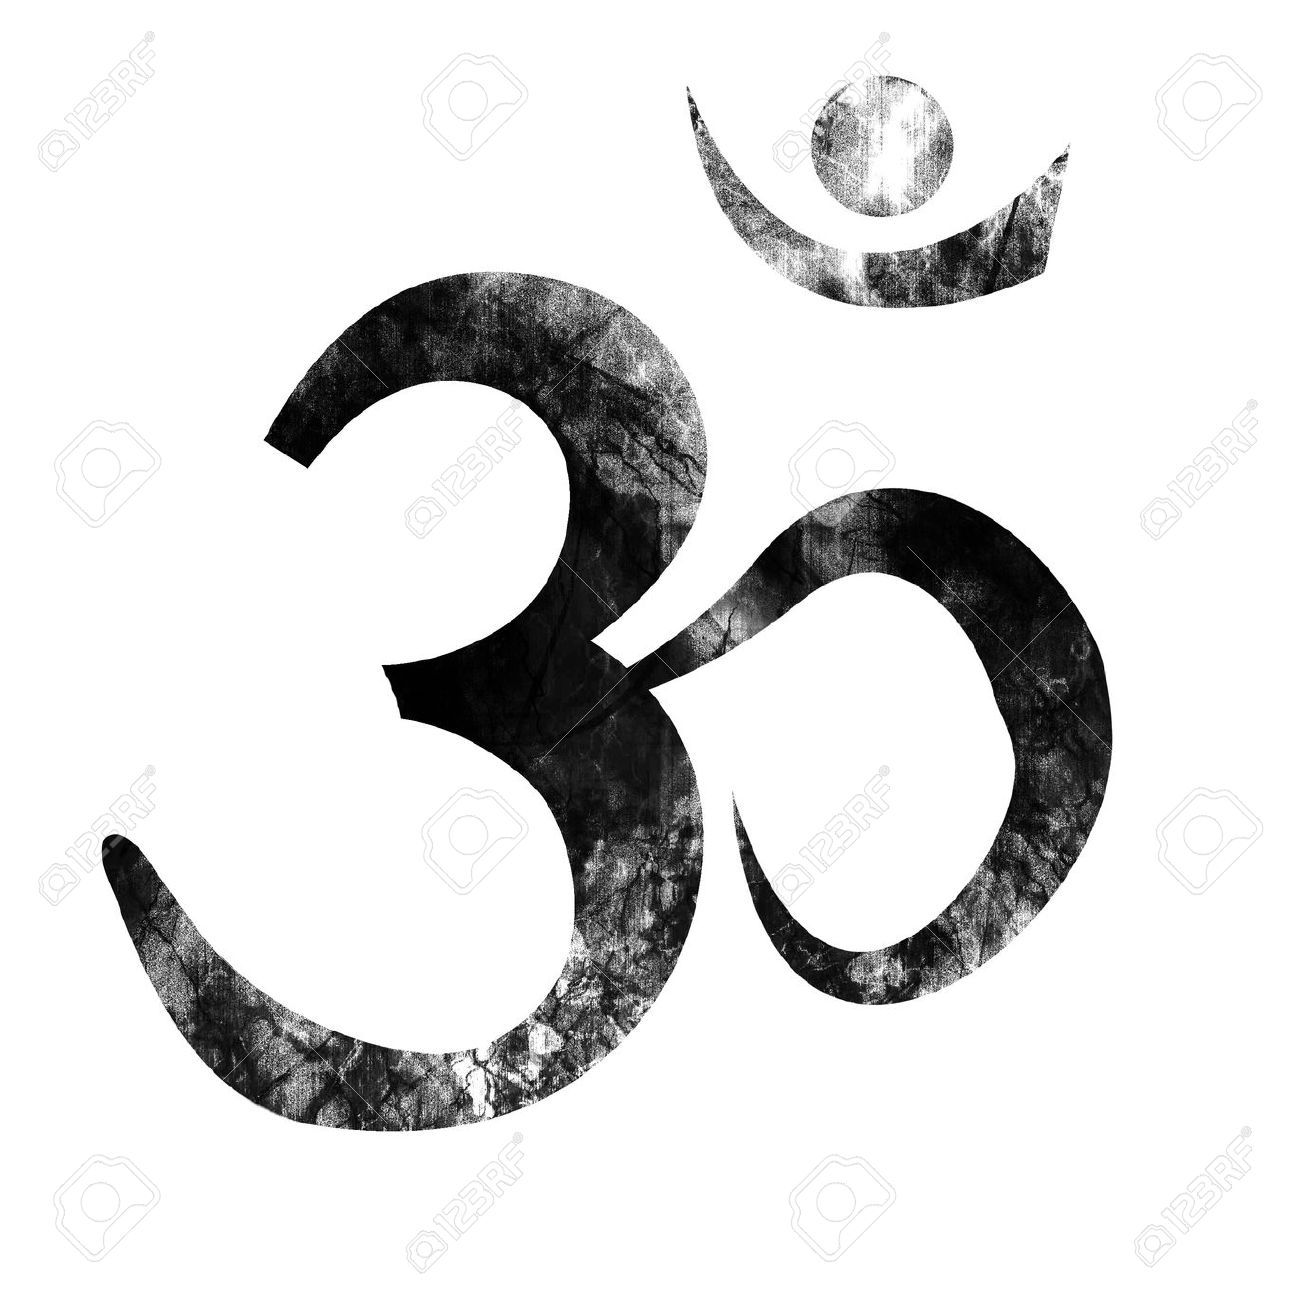 Om Symbol With Some Smooth Lines And Highlights Stock Photo Picture